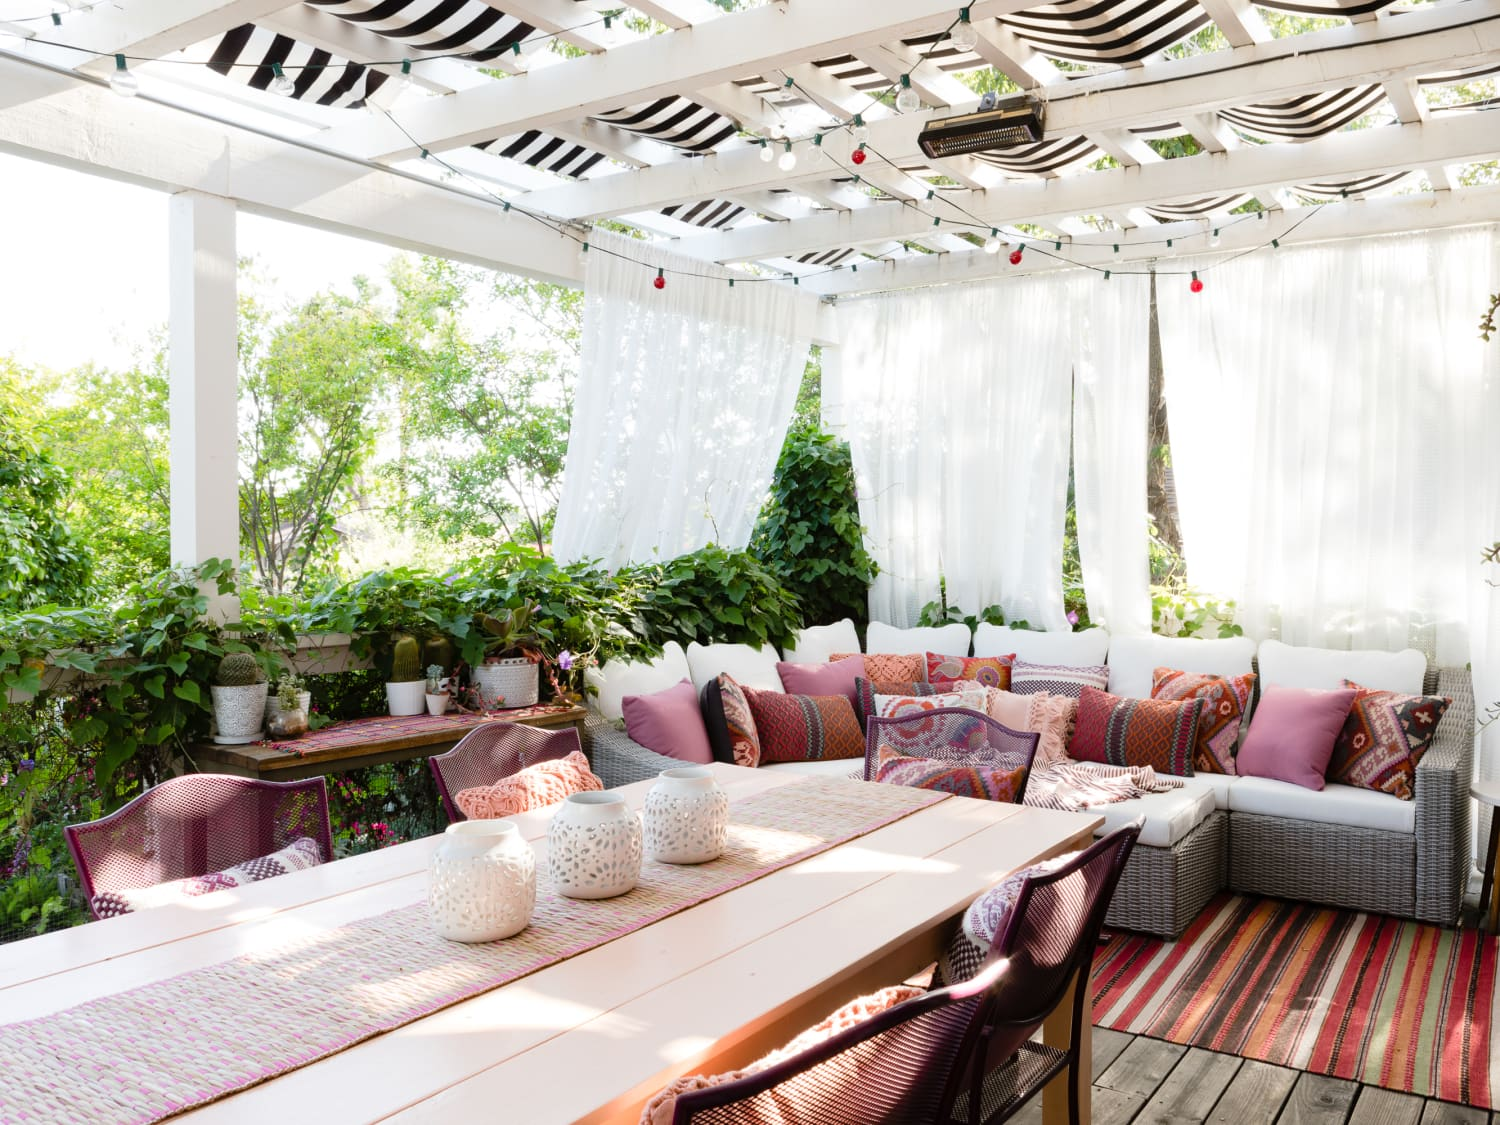 How To Shade Your Outdoor Space Maximize Its Privacy Apartment Therapy